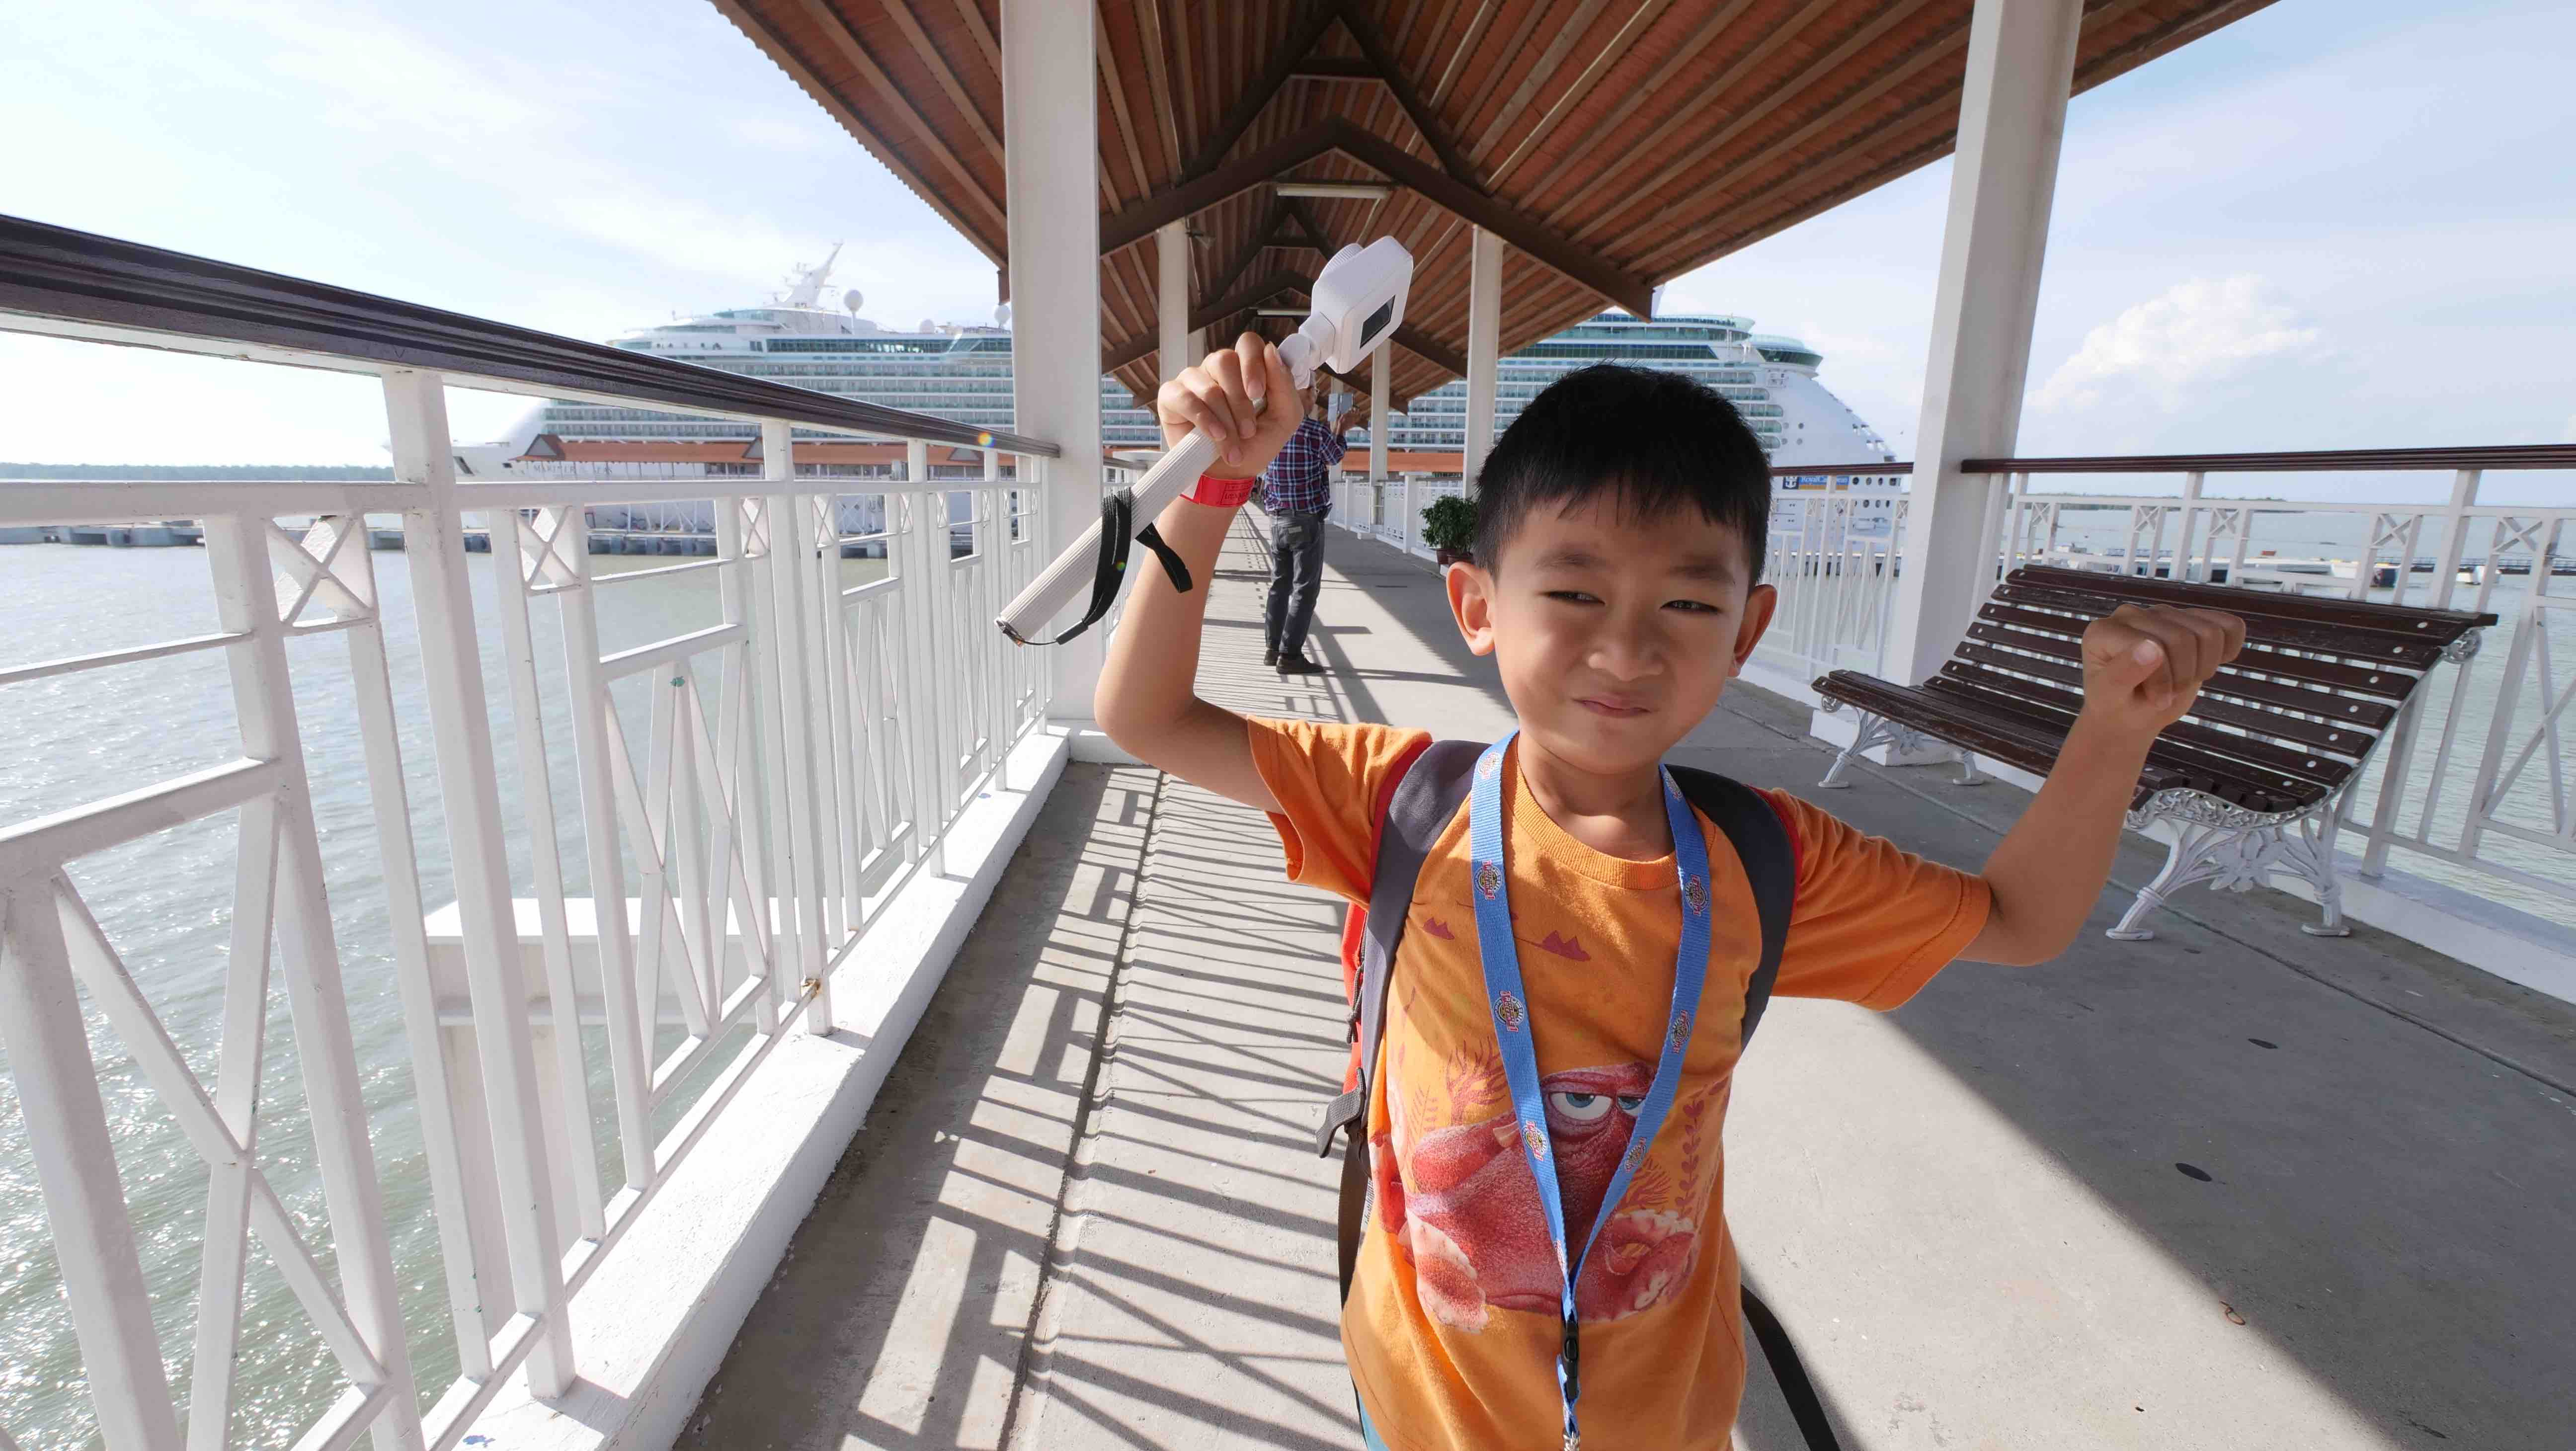 Kid-friendly things to do on board Royal Caribbean's Mariner of the Seas - Alvinology